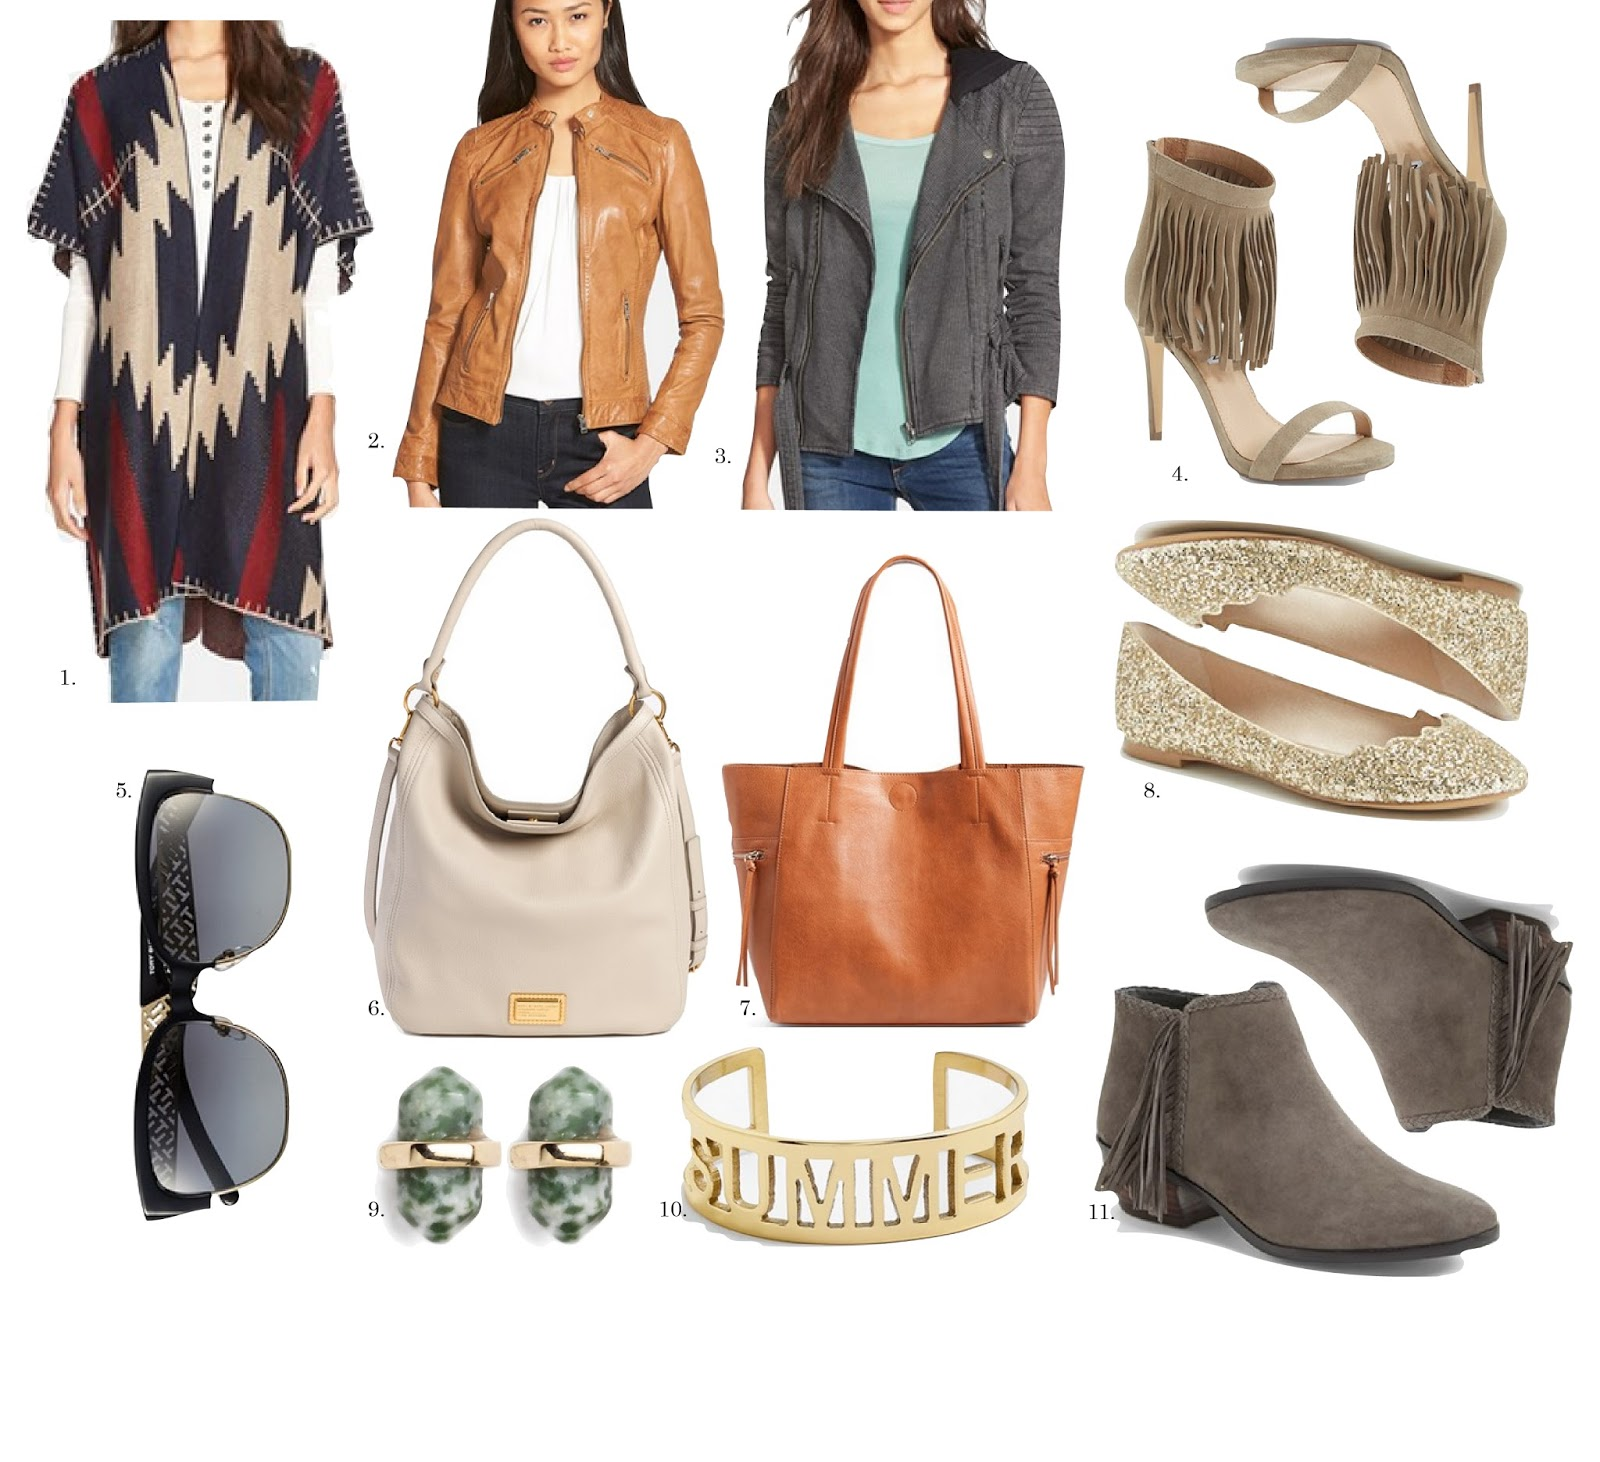 2015 NORDSTROM SALE PICKS